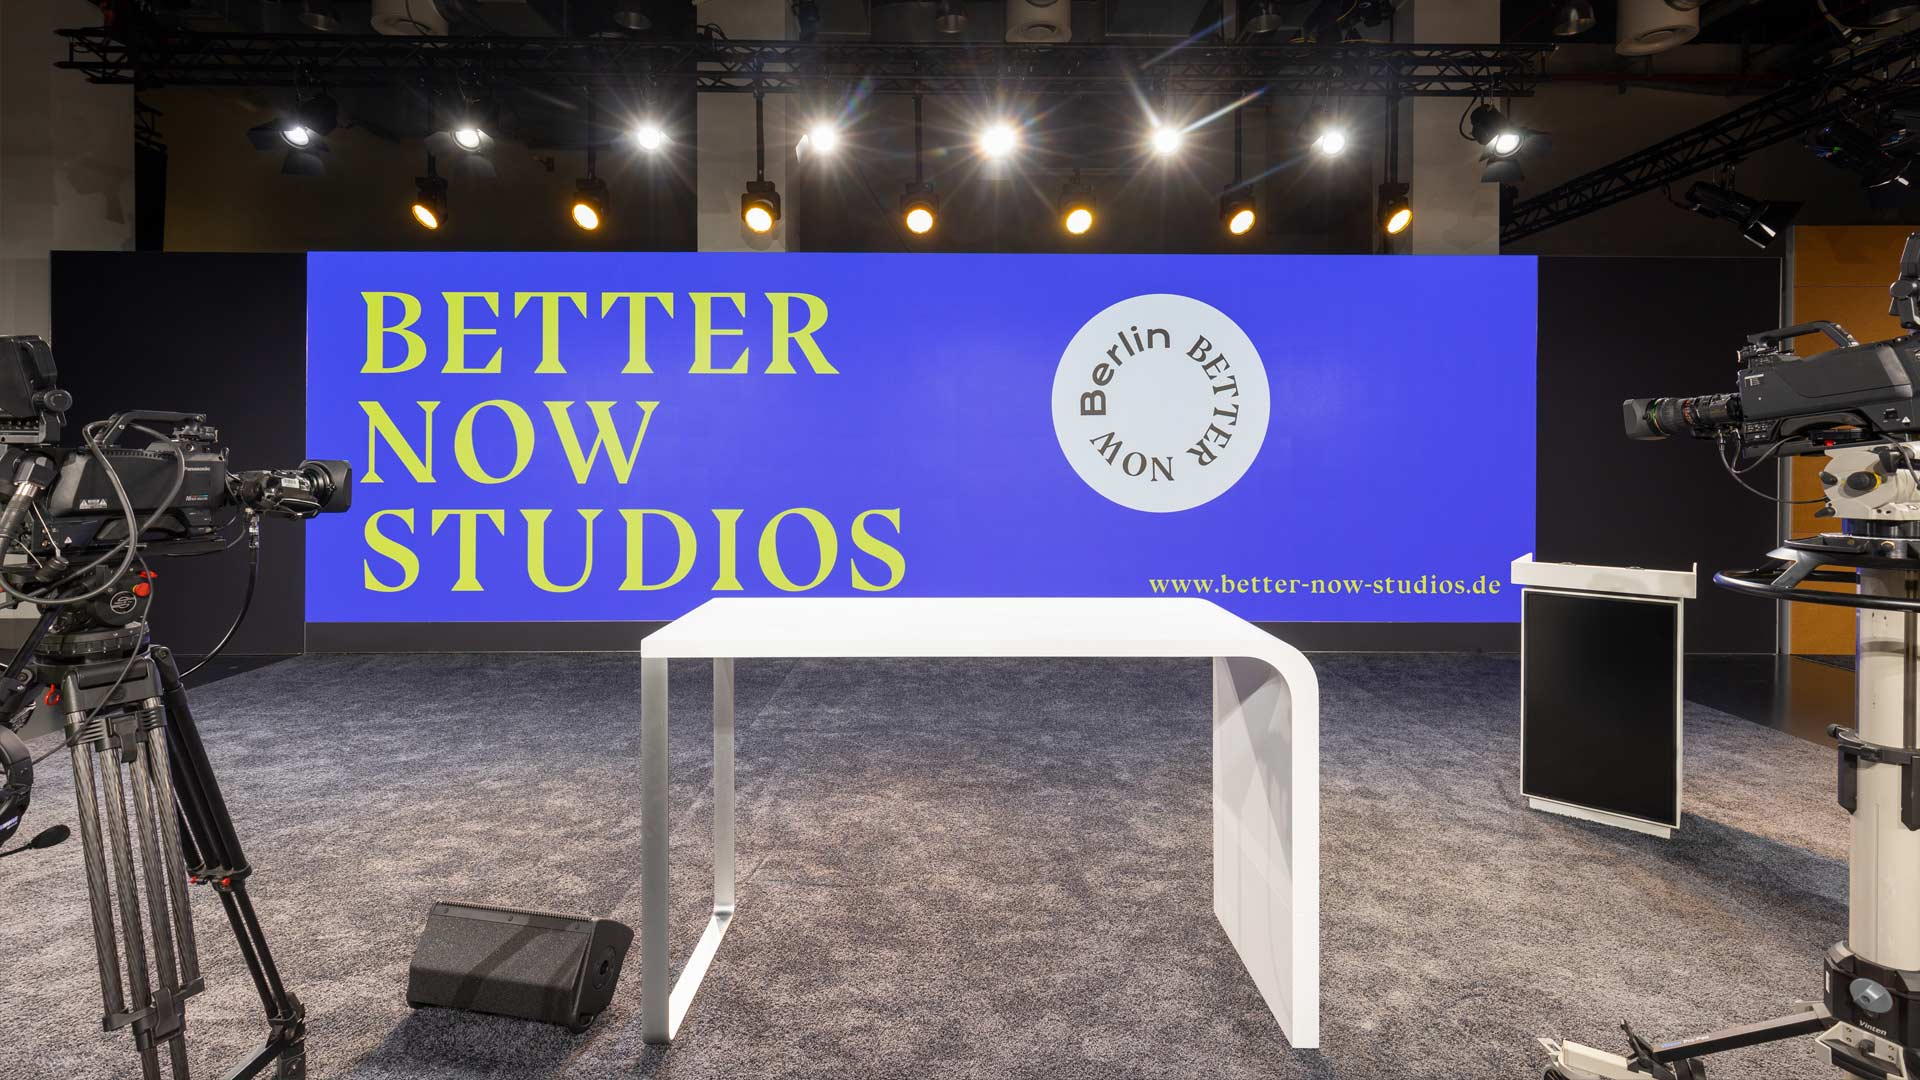 Better_Now_Studios_Berlin_04